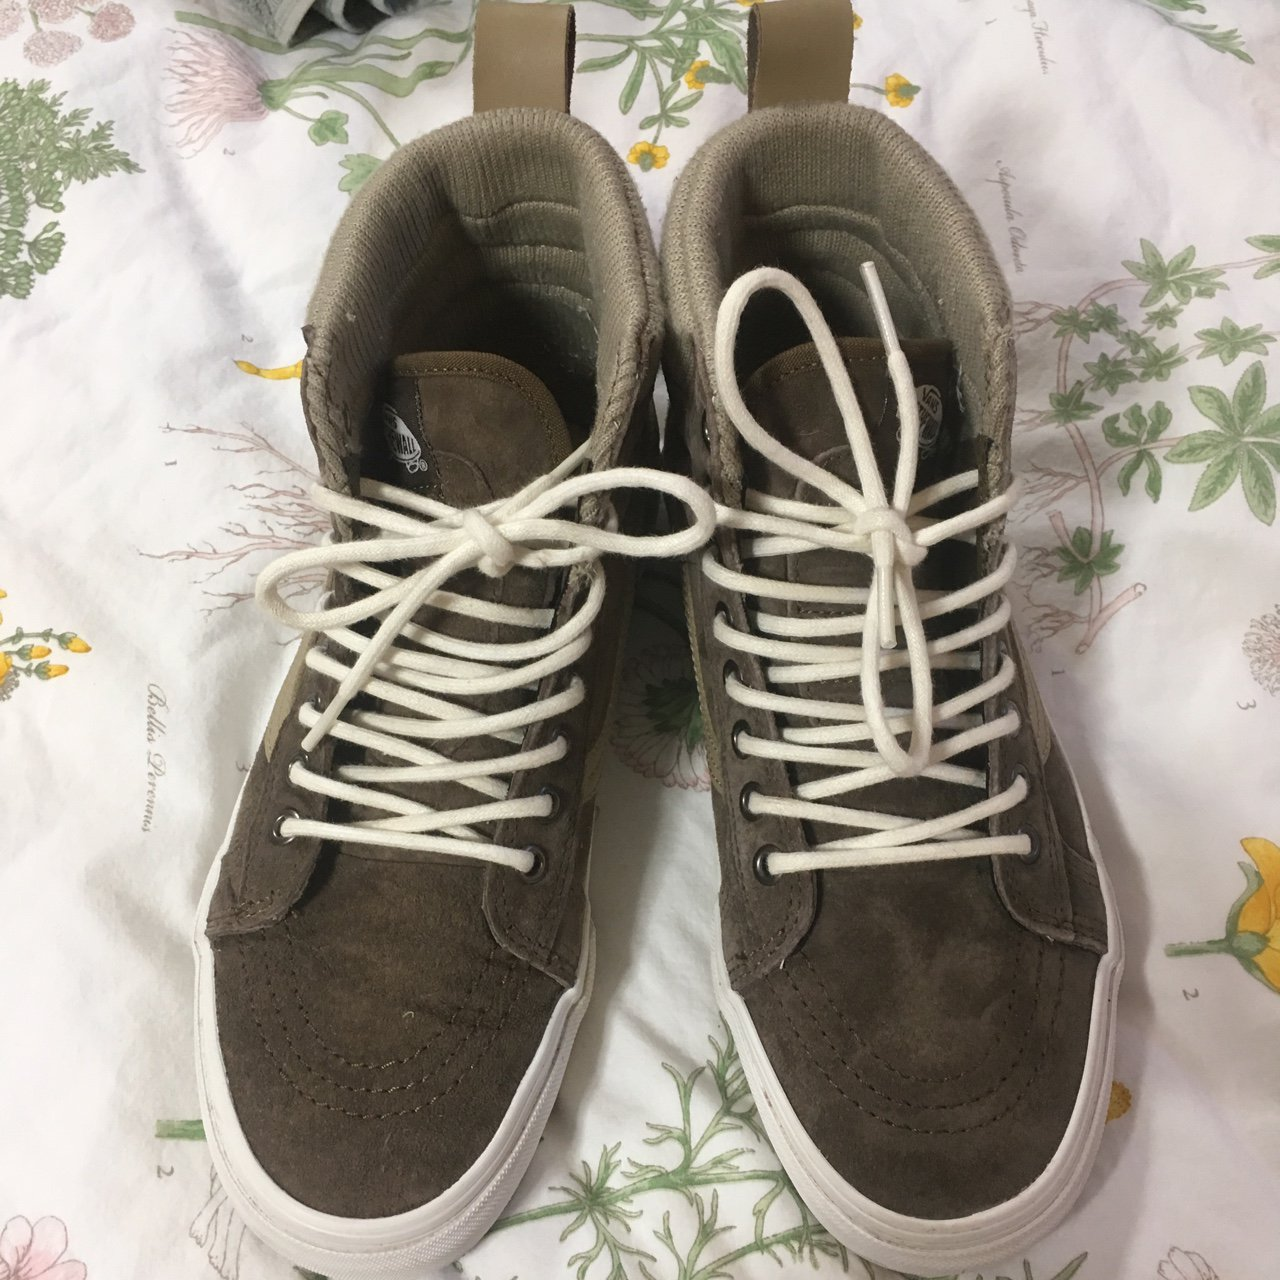 881e3ccb5cf5bd weather Sk8 hi MTE (two tone brown) Only worn once minimal - Depop